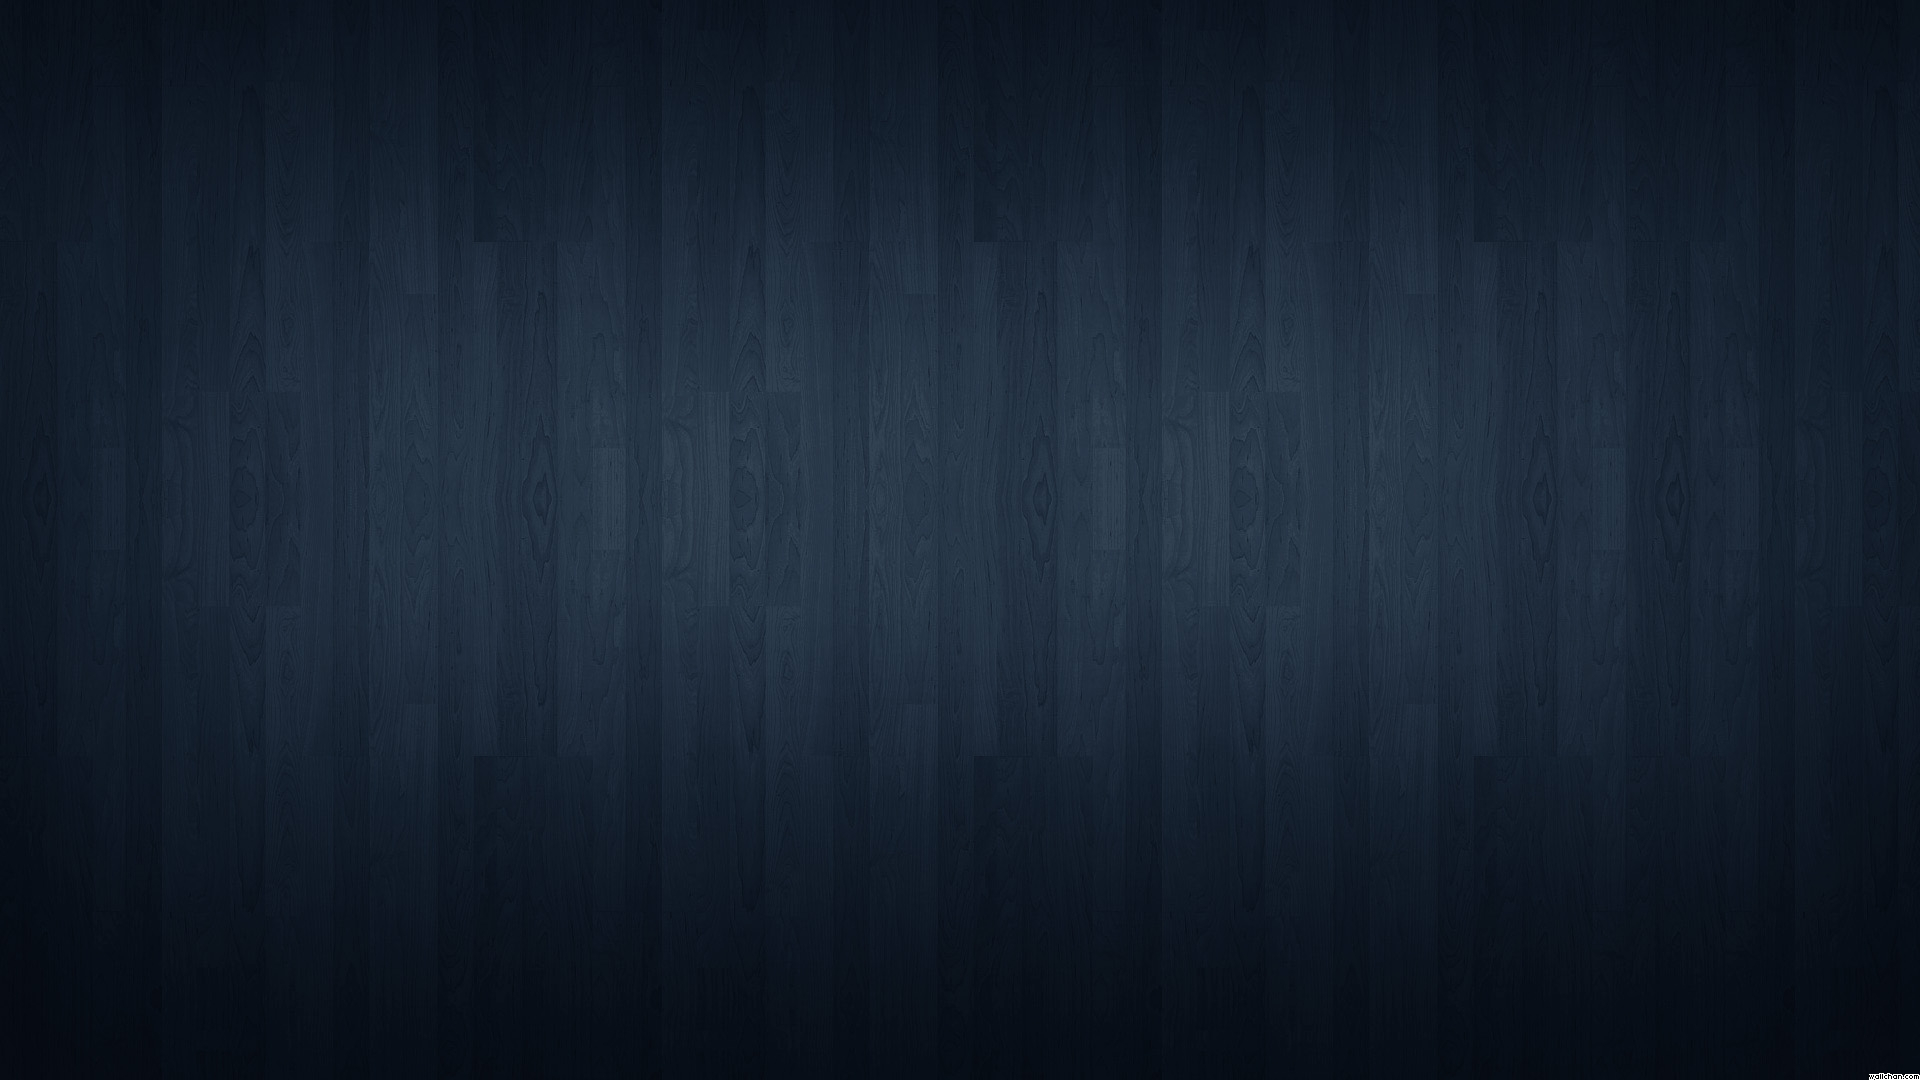 1305828451 Floor Minimalistic Dark Pattern Wood Patterns Wallpaper